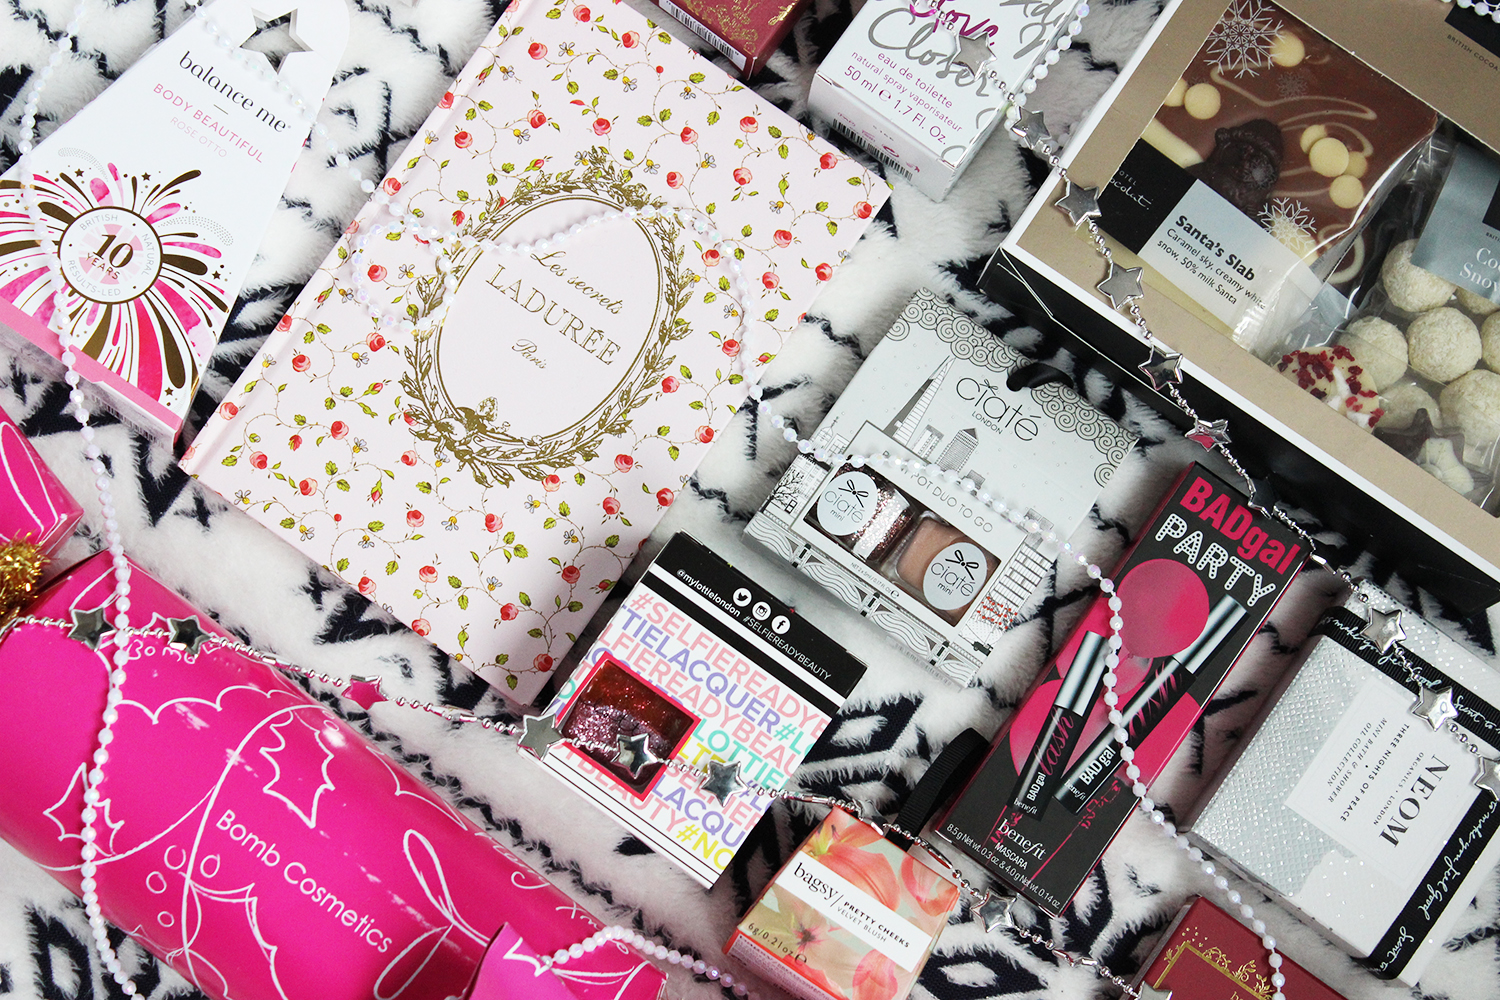 Christmas beauty gifts for her